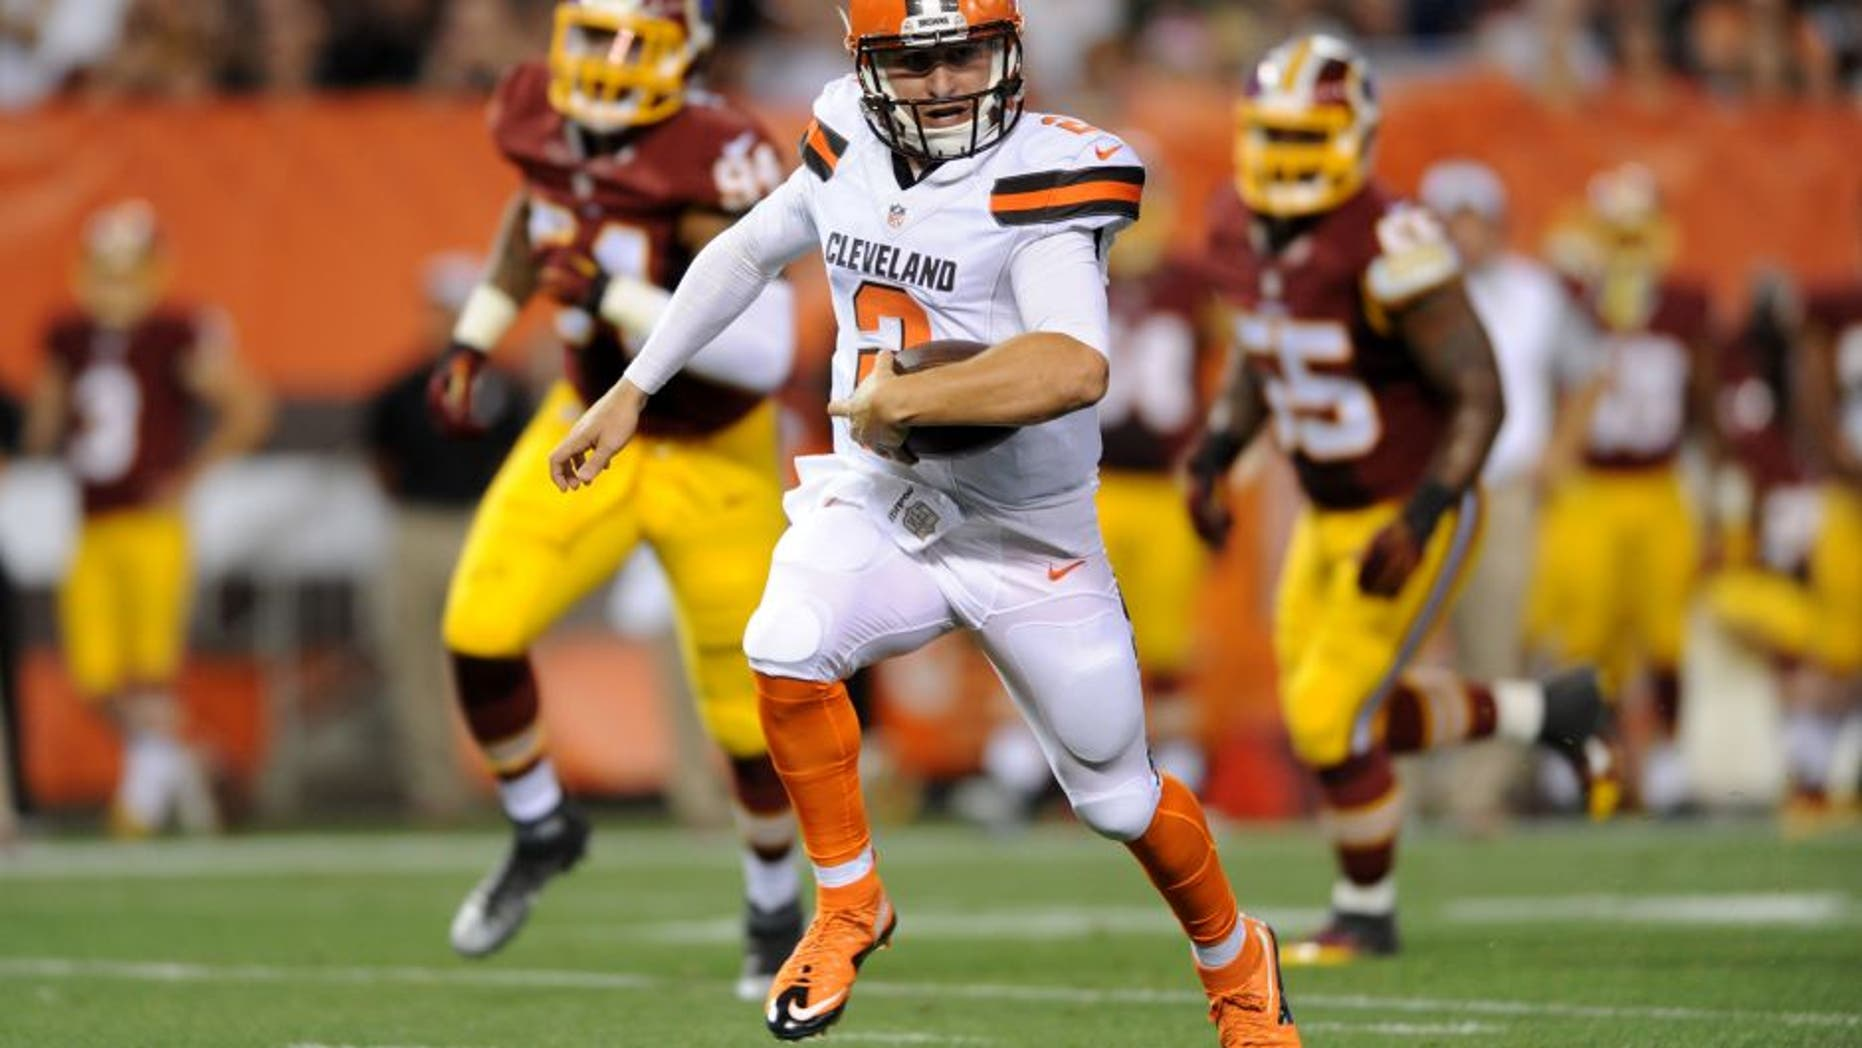 Aug 13, 2015; Cleveland, OH, USA; Cleveland Browns quarterback Johnny Manziel (2) runs for a touchdown during the second quarter against the Washington Redskins in a preseason NFL football game at FirstEnergy Stadium. Mandatory Credit: Ken Blaze-USA TODAY Sports